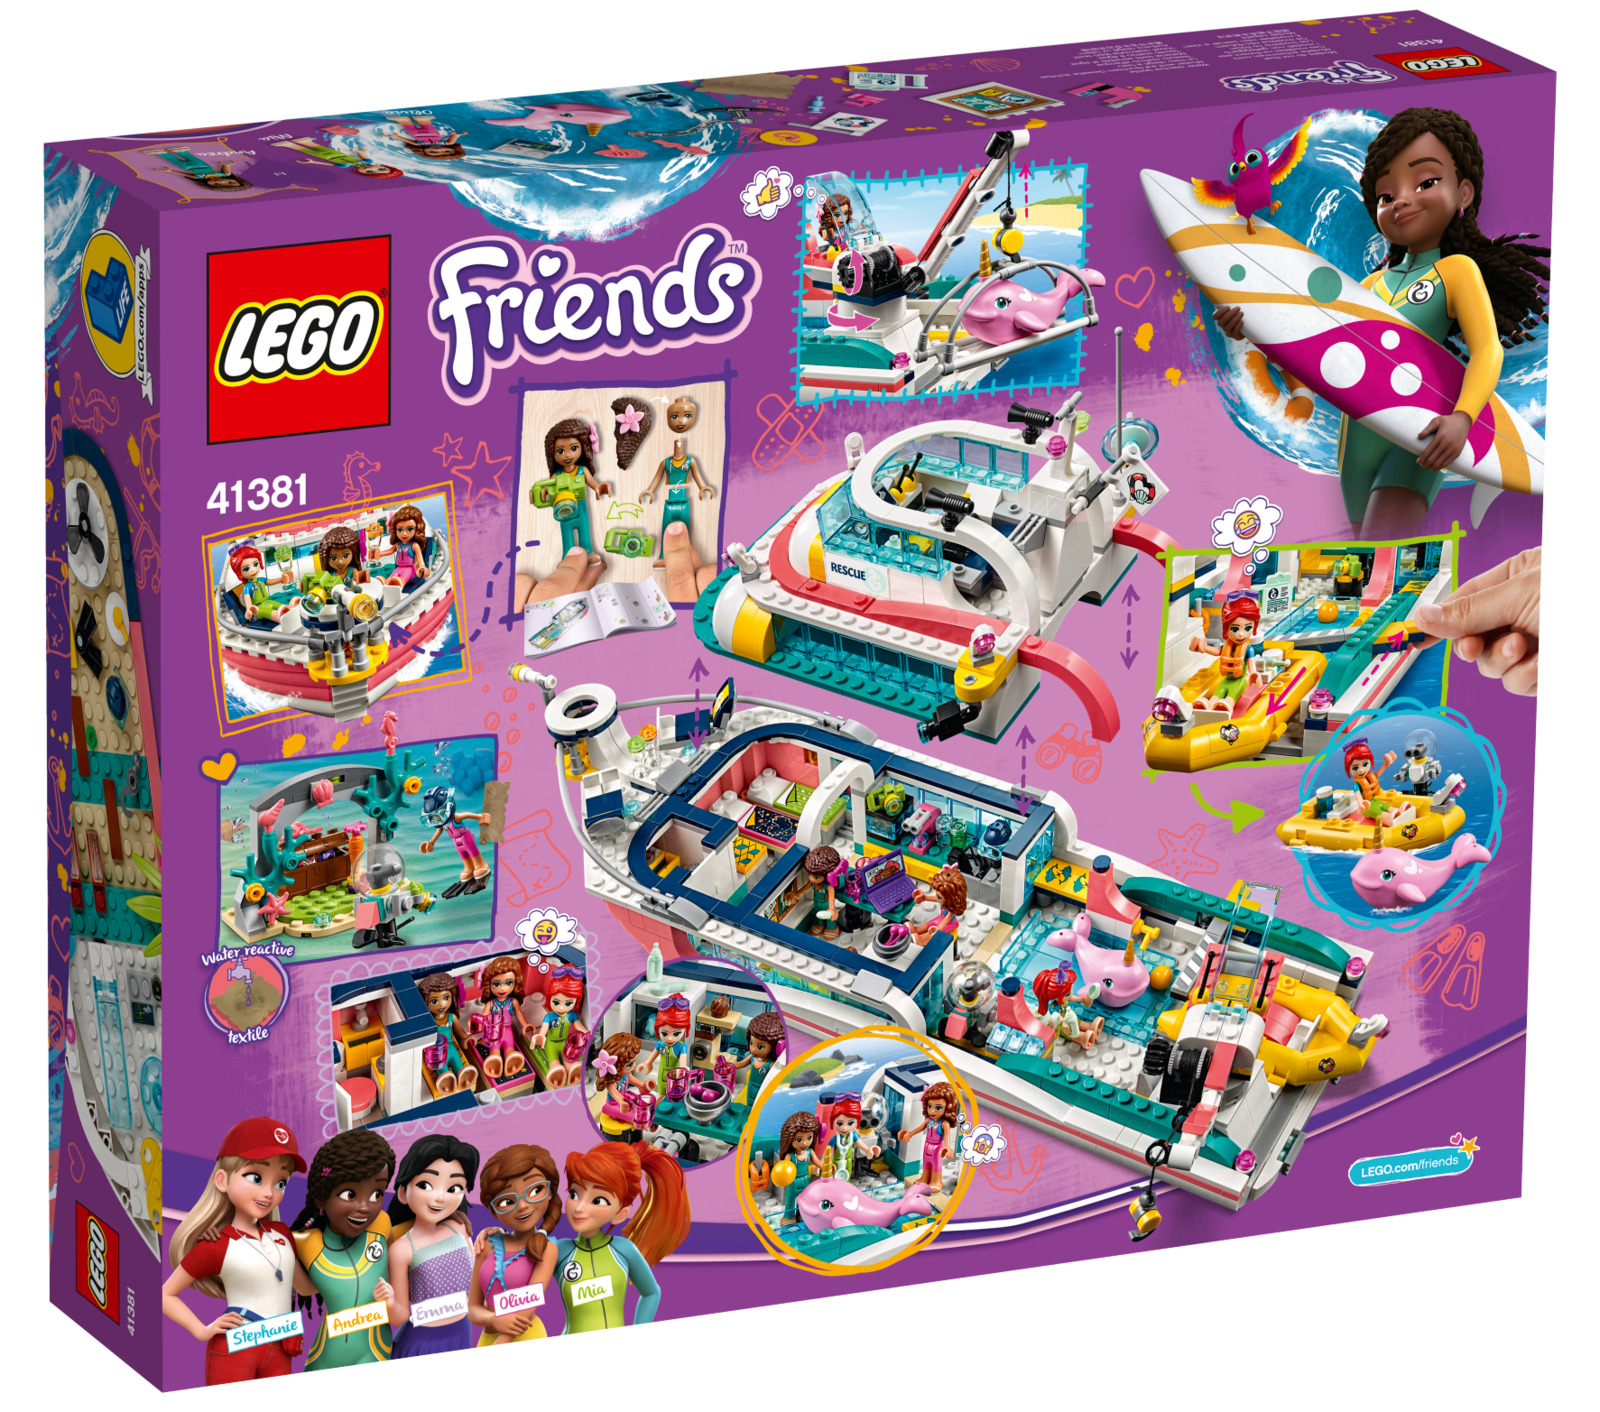 LEGO Friends: Rescue Mission Boat - (41381) image